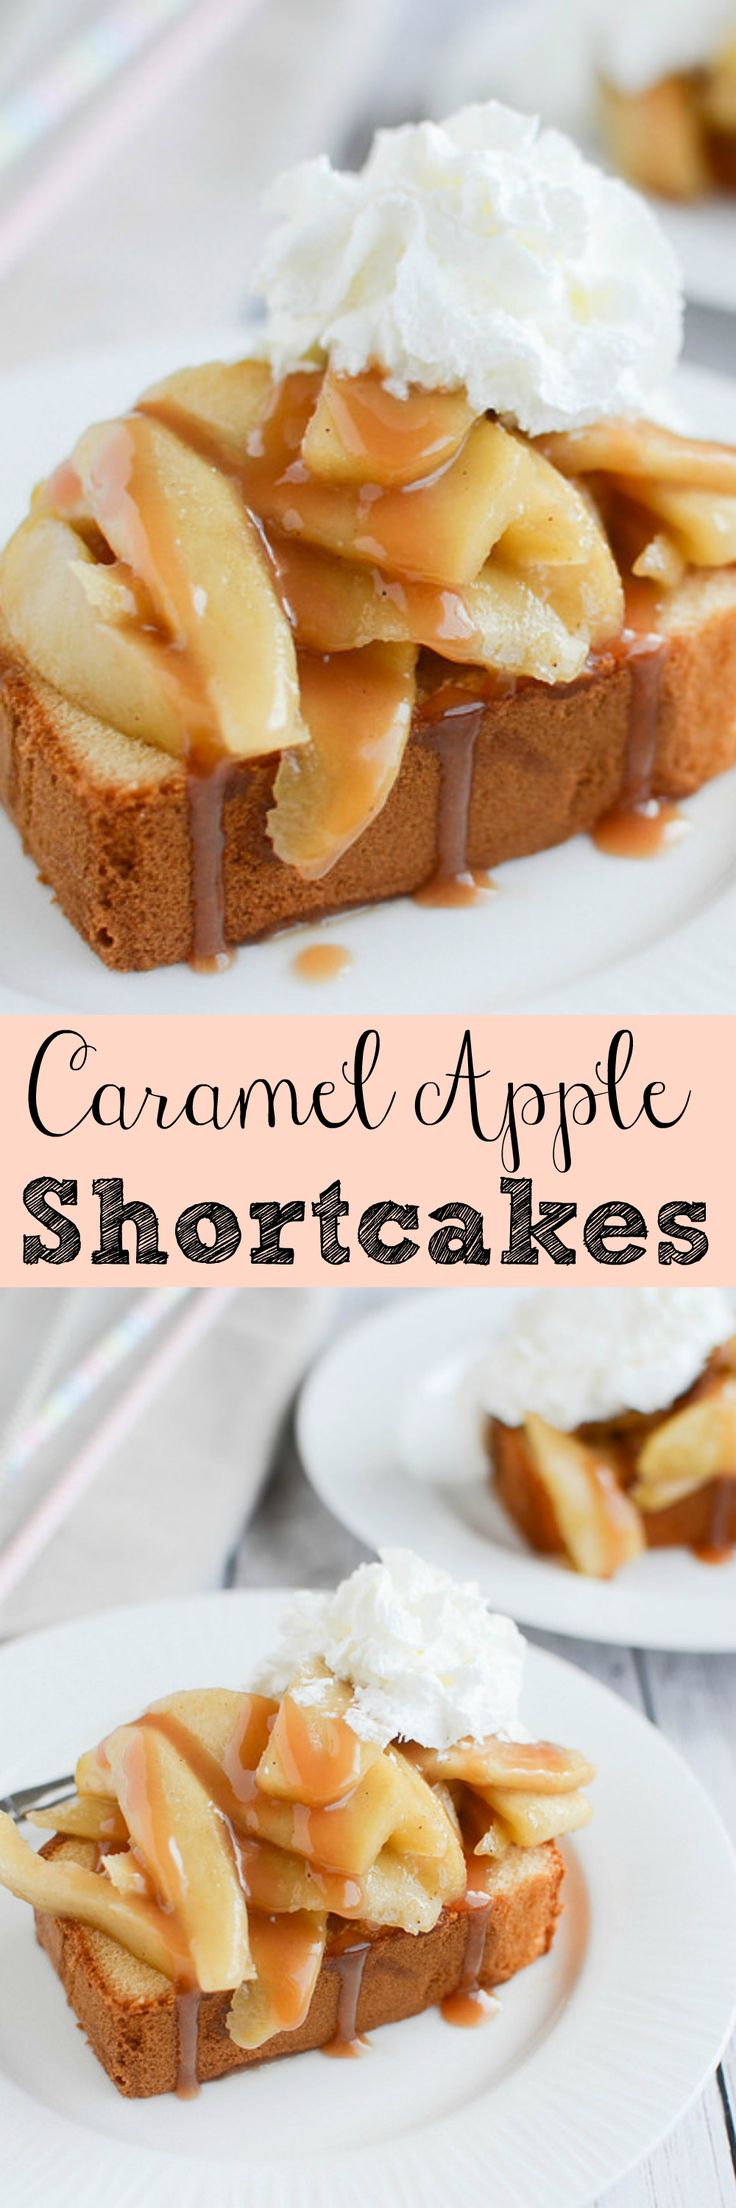 Caramel Apple Shortcakes - pound cake topped with cinnamon apples, caramel sauce, and whipped cream!